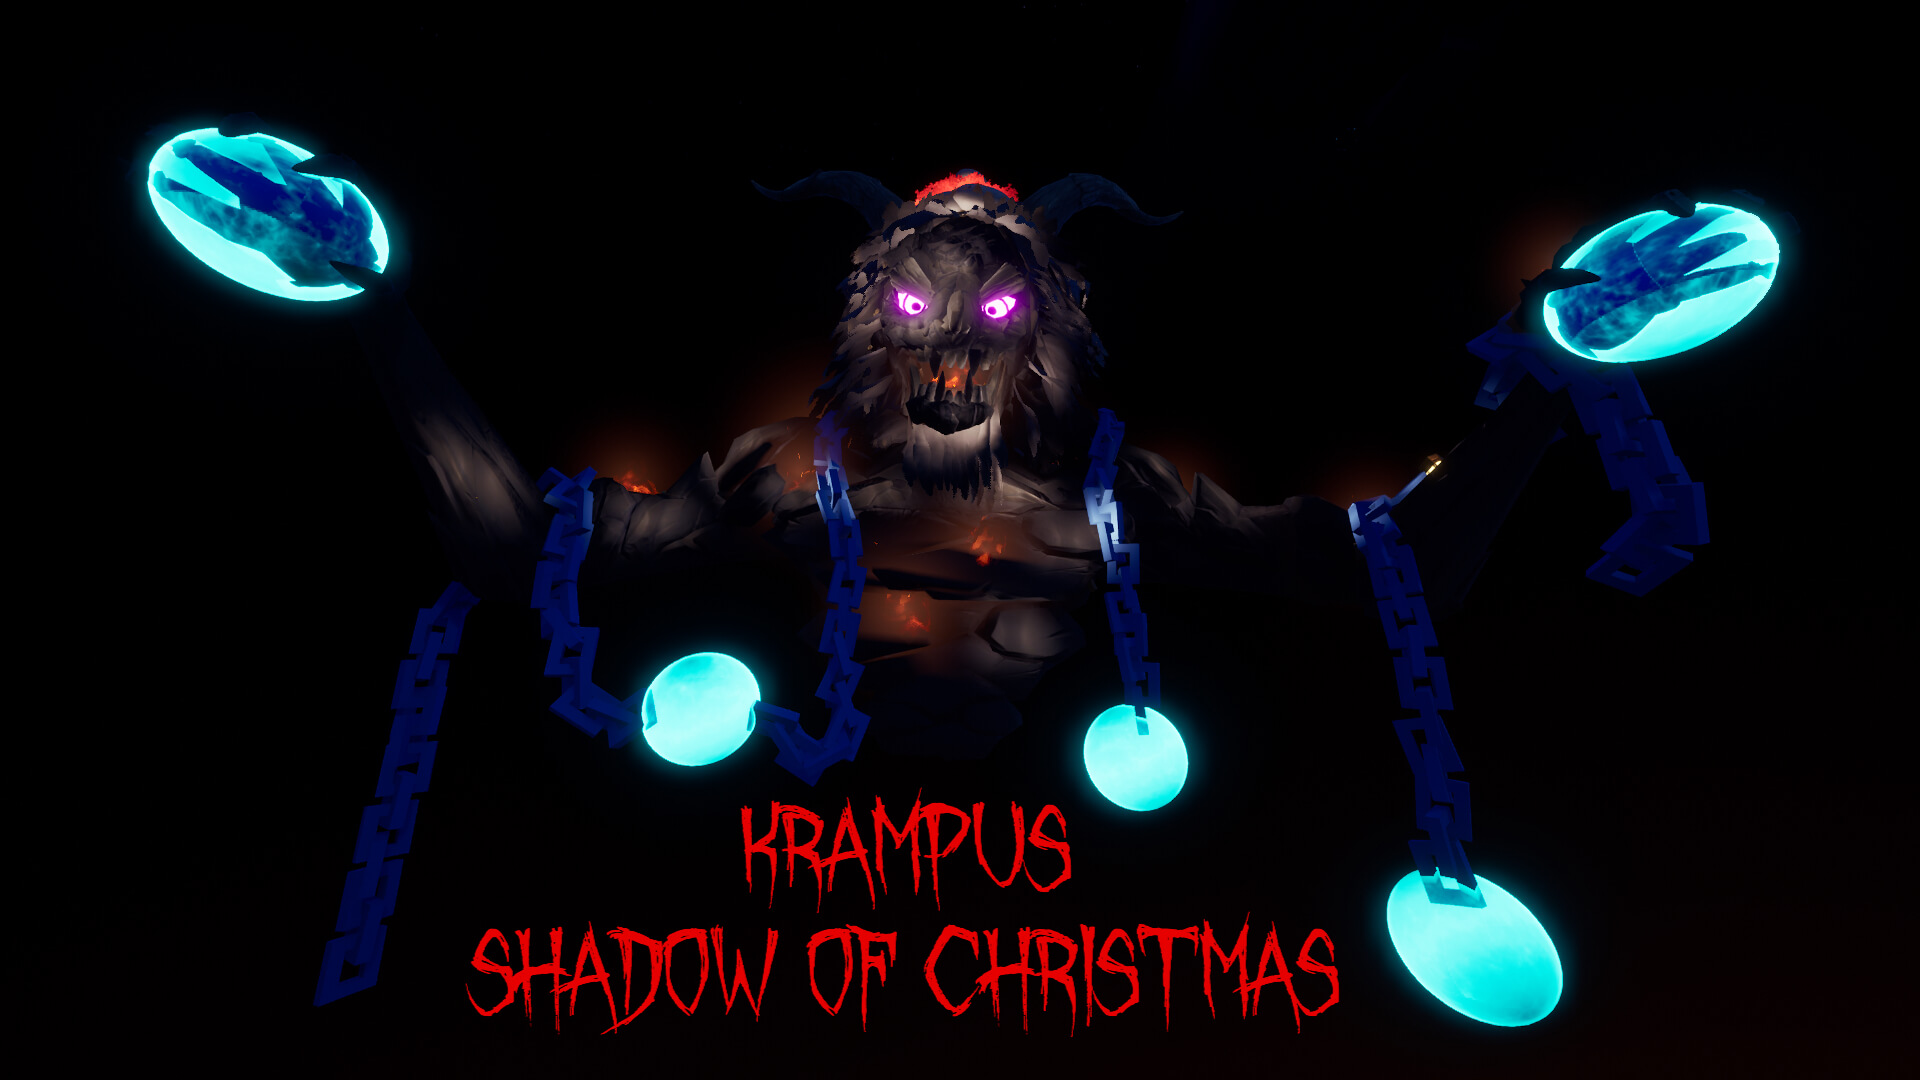 KRAMPUS: SHADOW OF CHRISTMAS